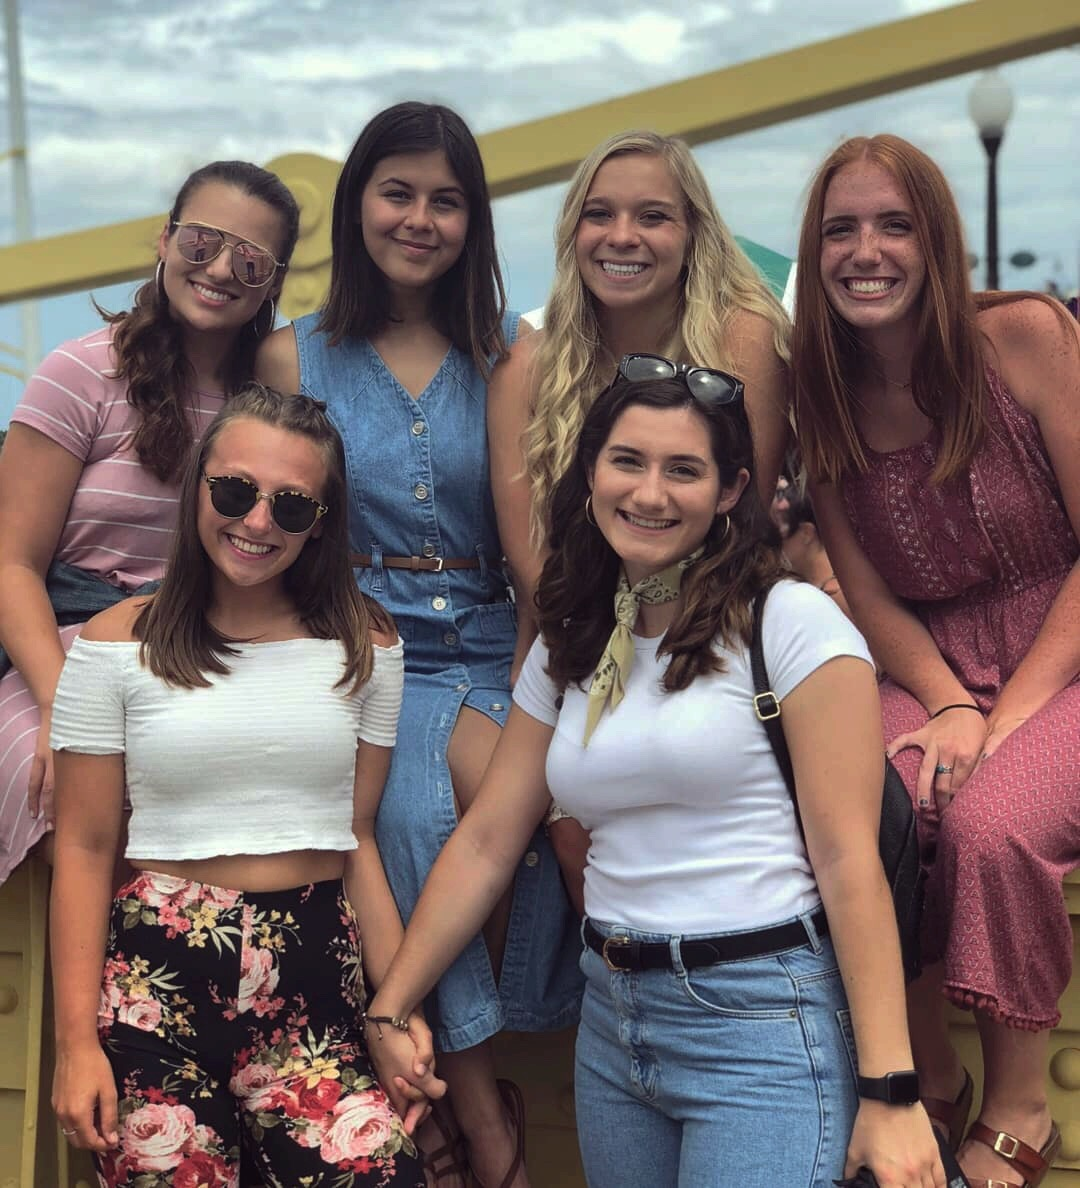 Me (top far left) and my beautiful friends: Alyssa (next to me), Melissa (next to Alyssa), Marj (top far right), Delaney (bottom right), and Danielle (bottom left)